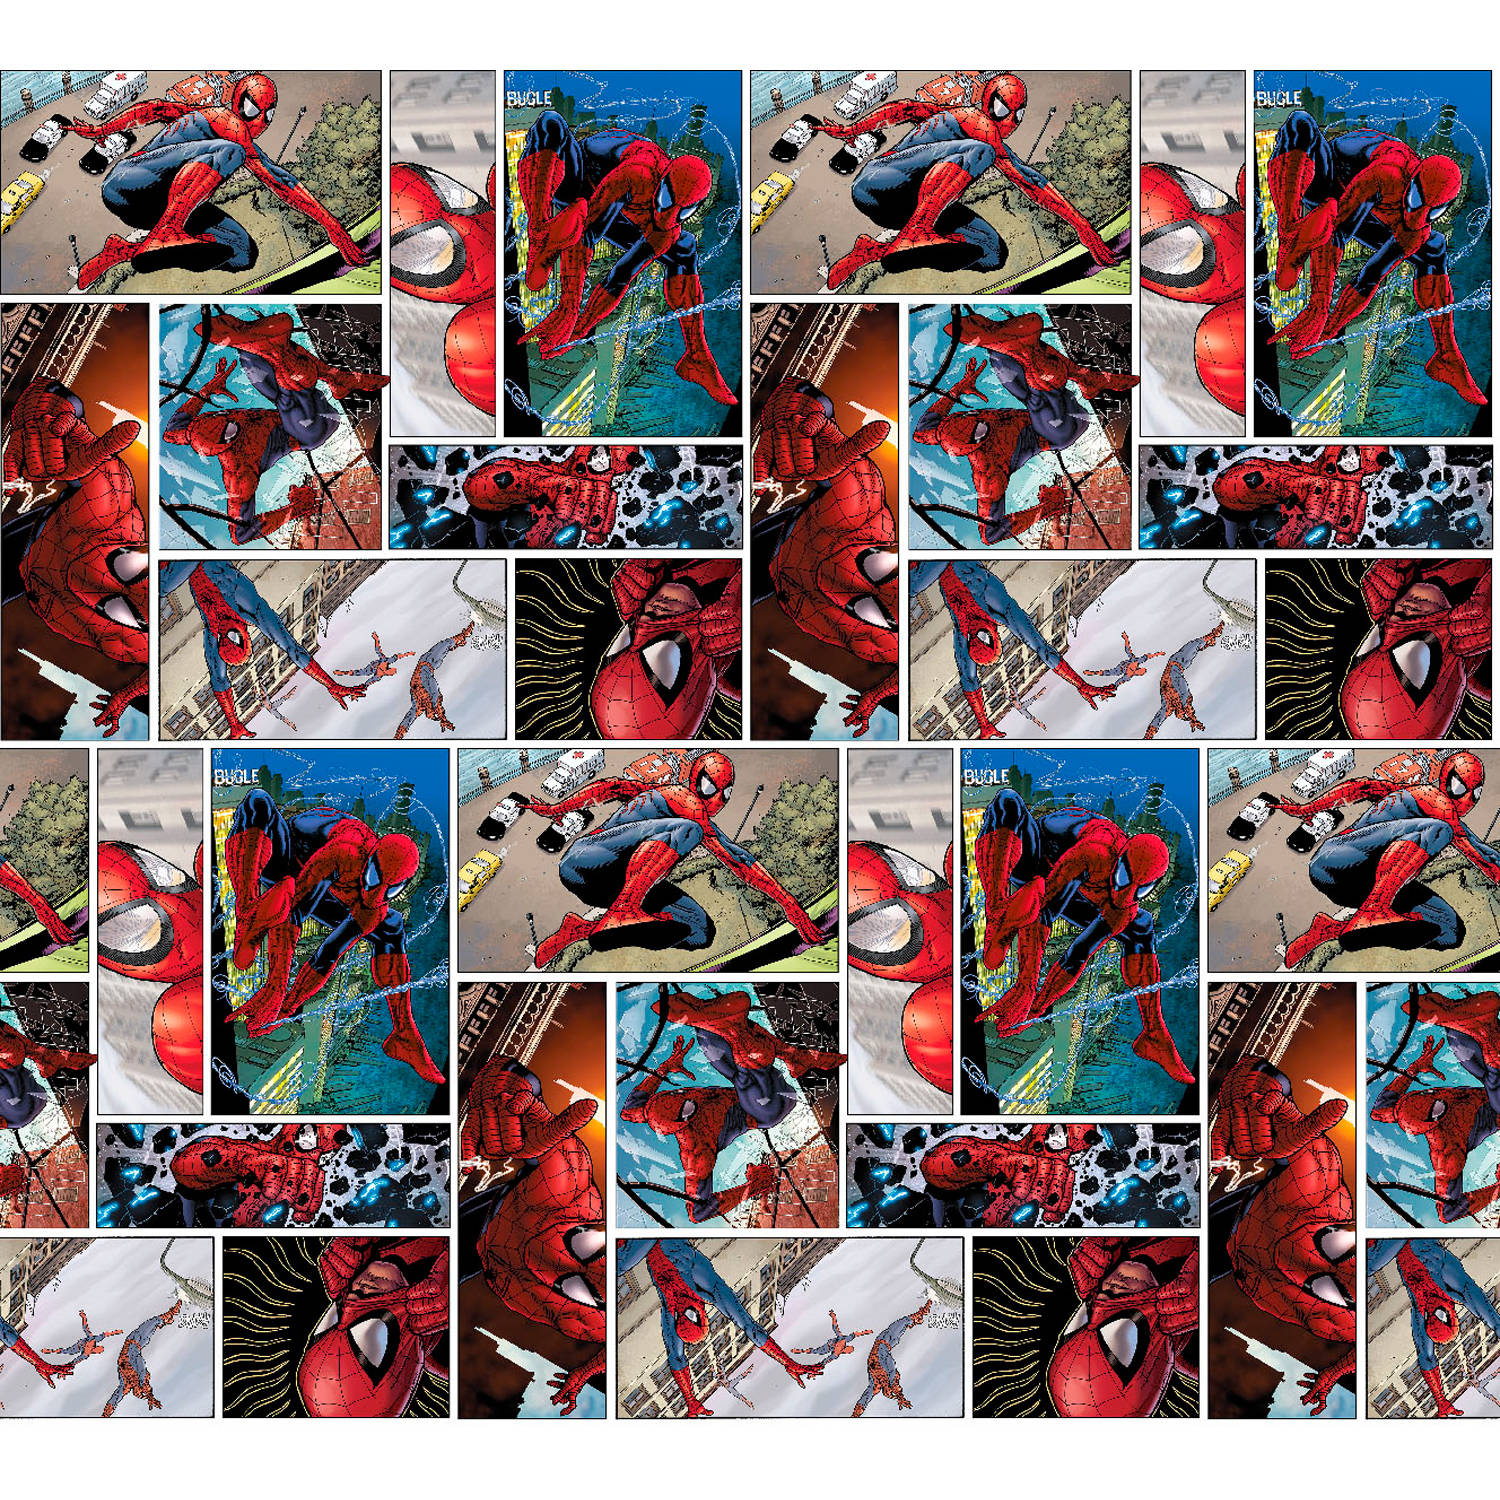 "Marvel Spiderman Comic Scenes, Multi-Colored, 43/44"" Width, Fabric by the Yard 53379-A62331"